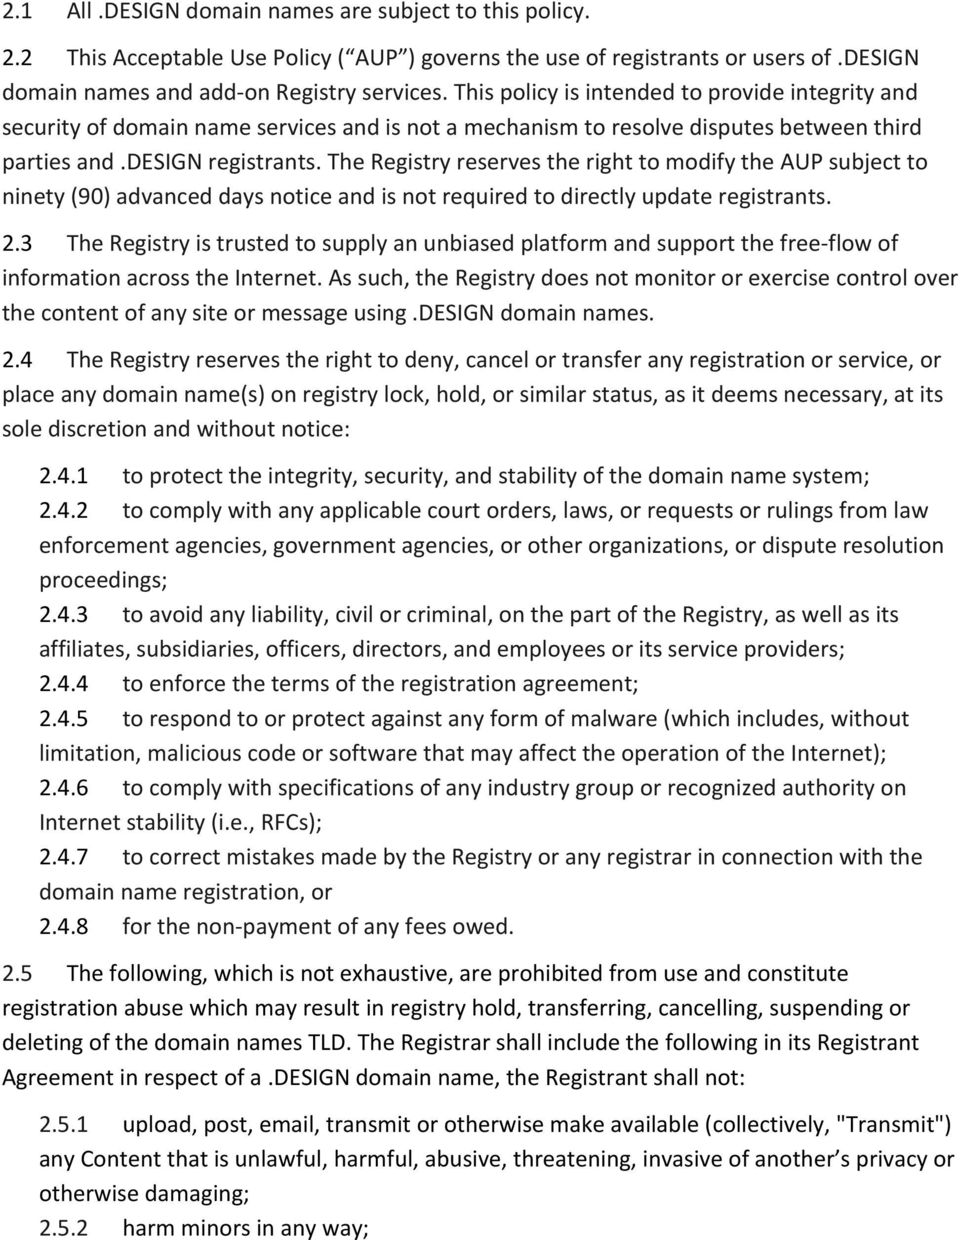 The Registry reserves the right to modify the AUP subject to ninety (90) advanced days notice and is not required to directly update registrants. 2.